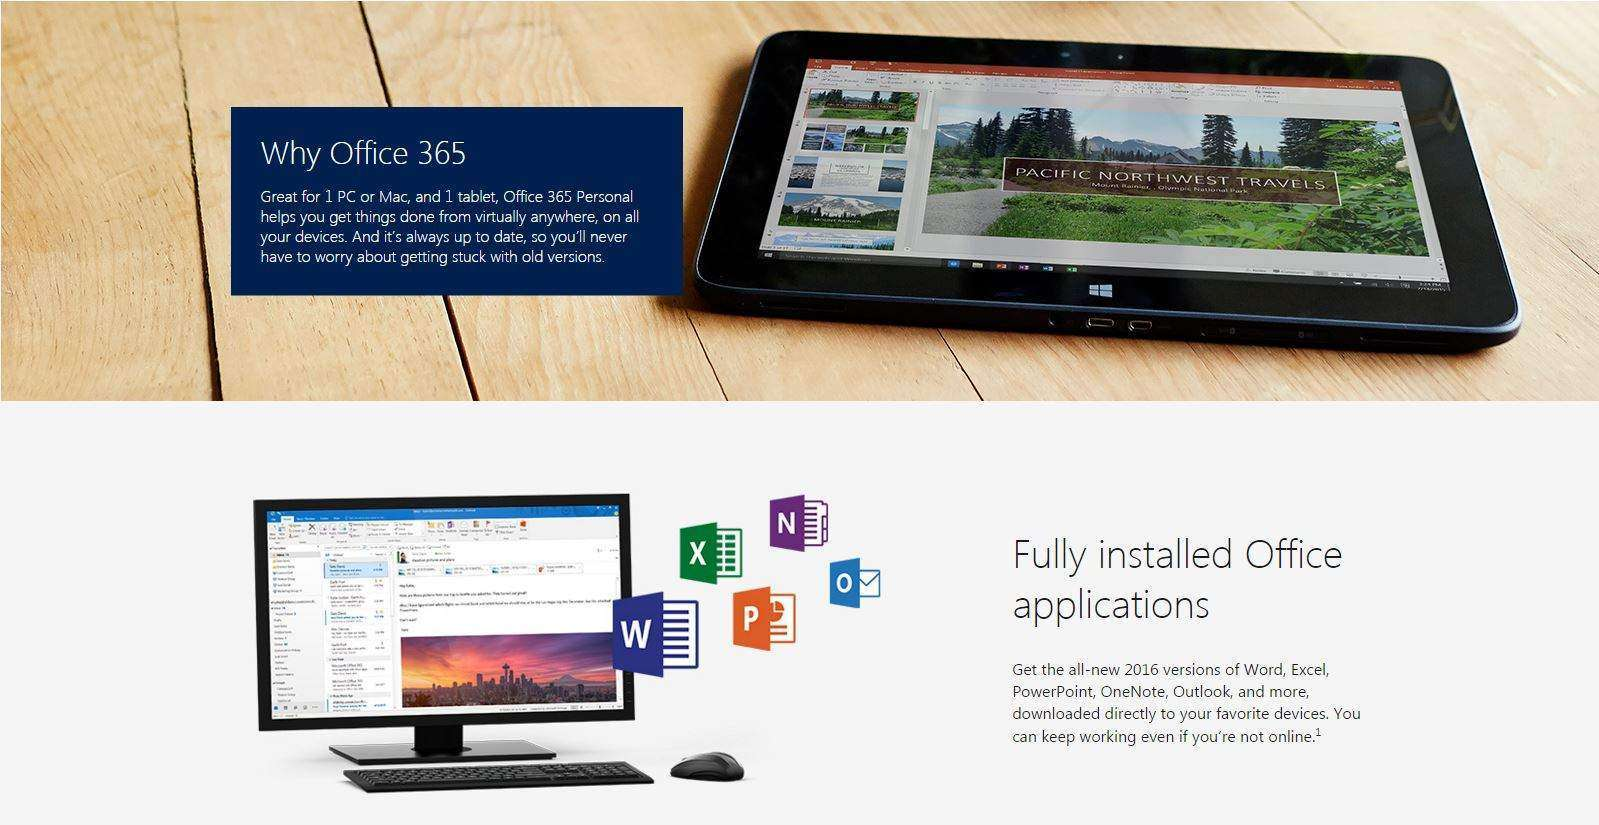 Microsoft Office 365 - Fully installed Office applications